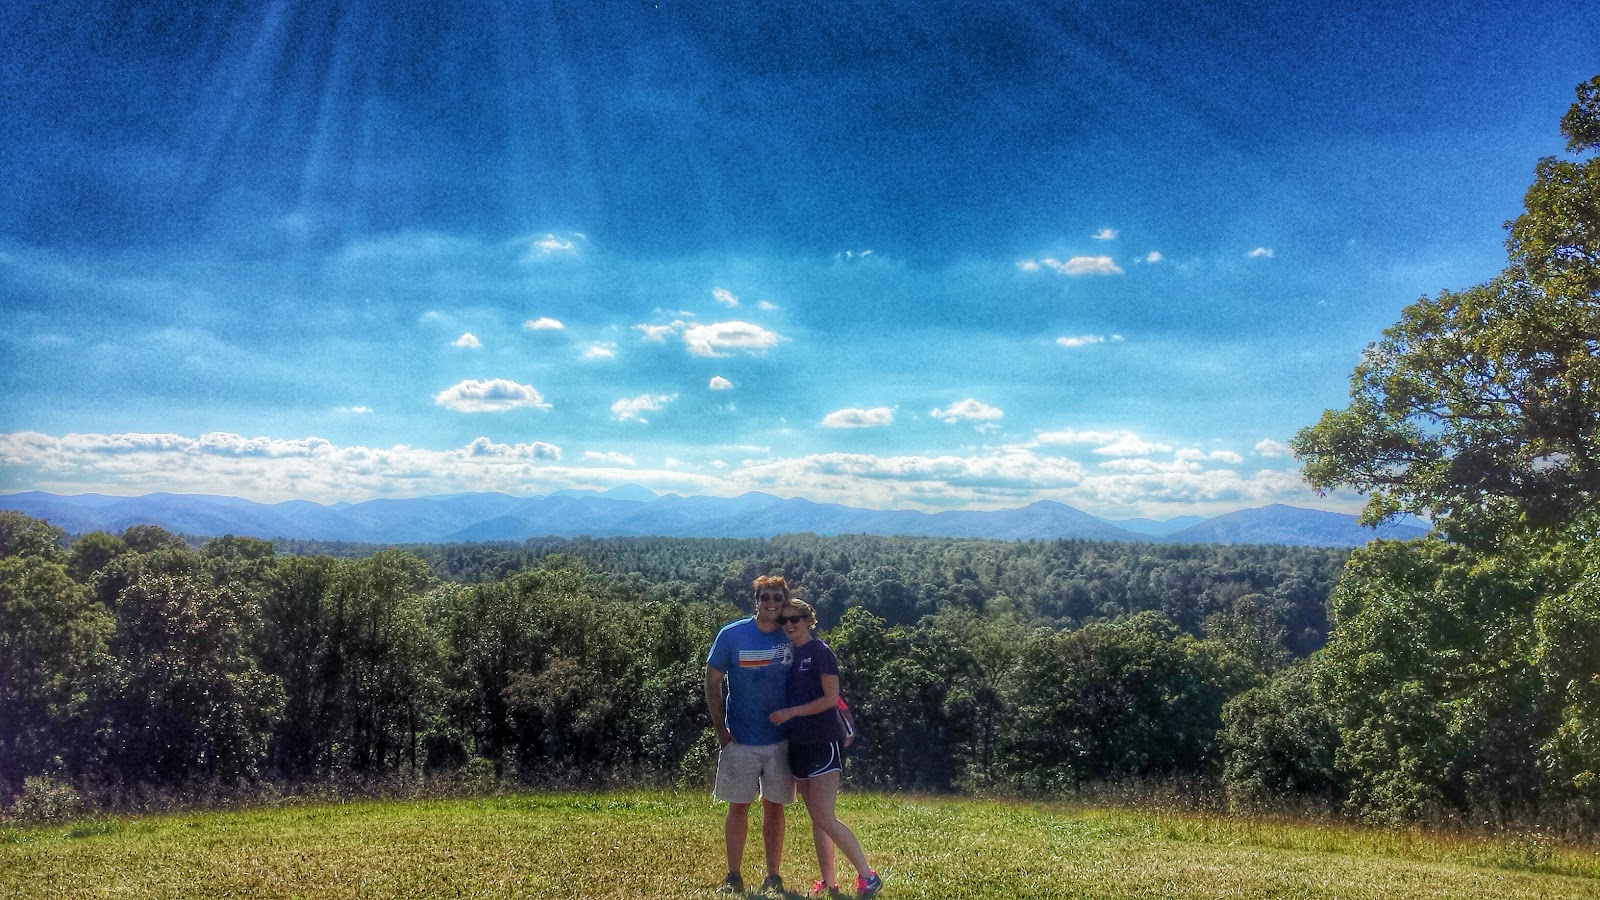 Romance in the Smoky Mountains